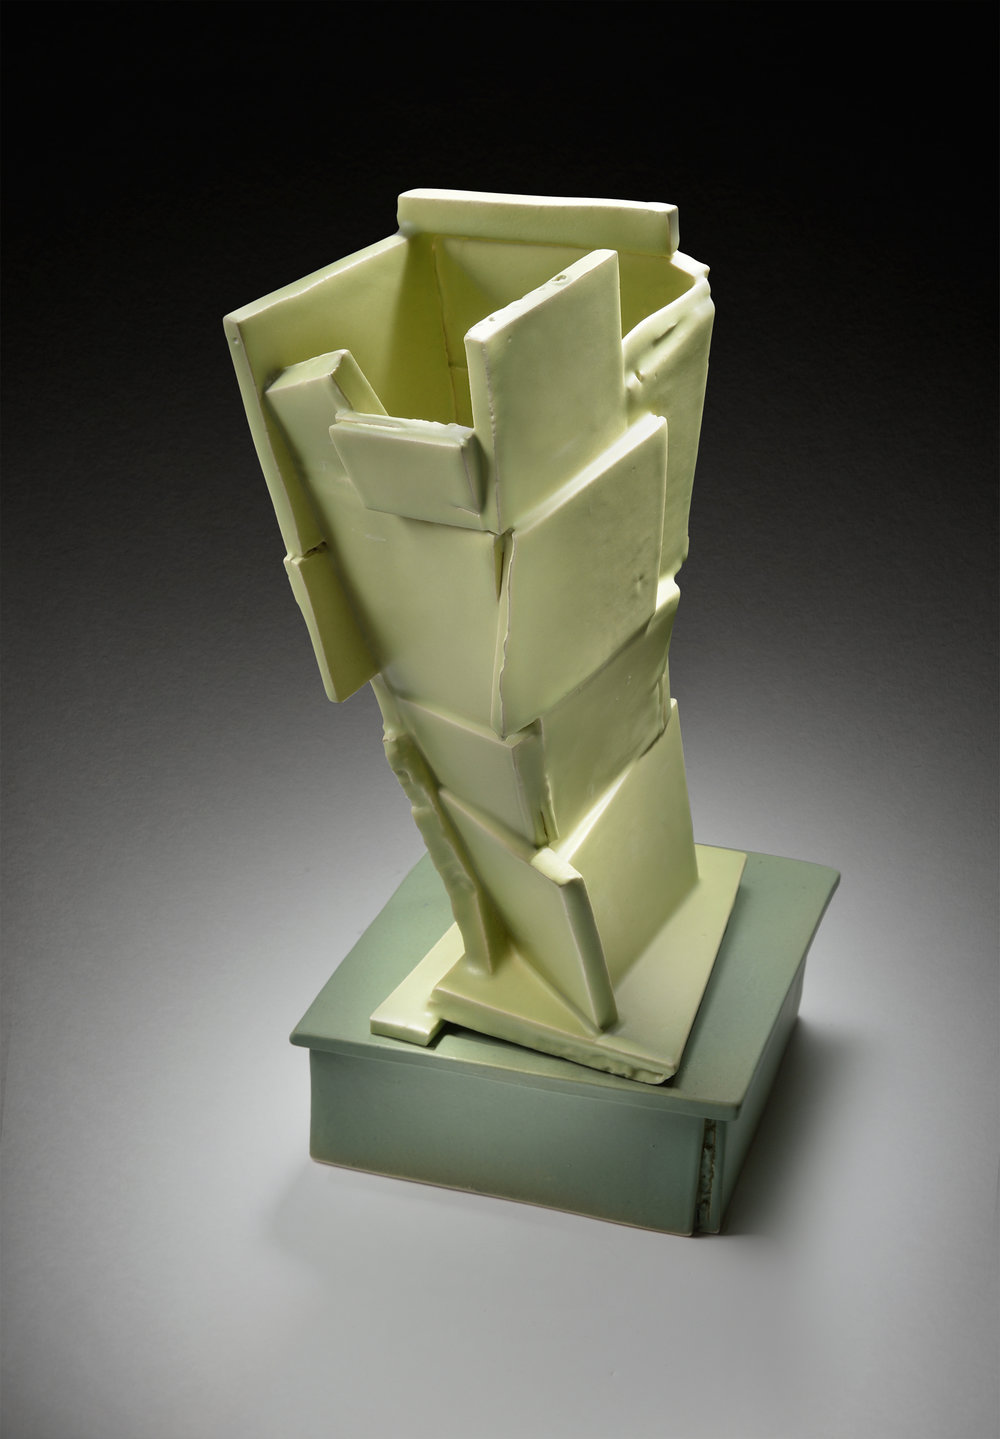 Tilted Green Vase on Base